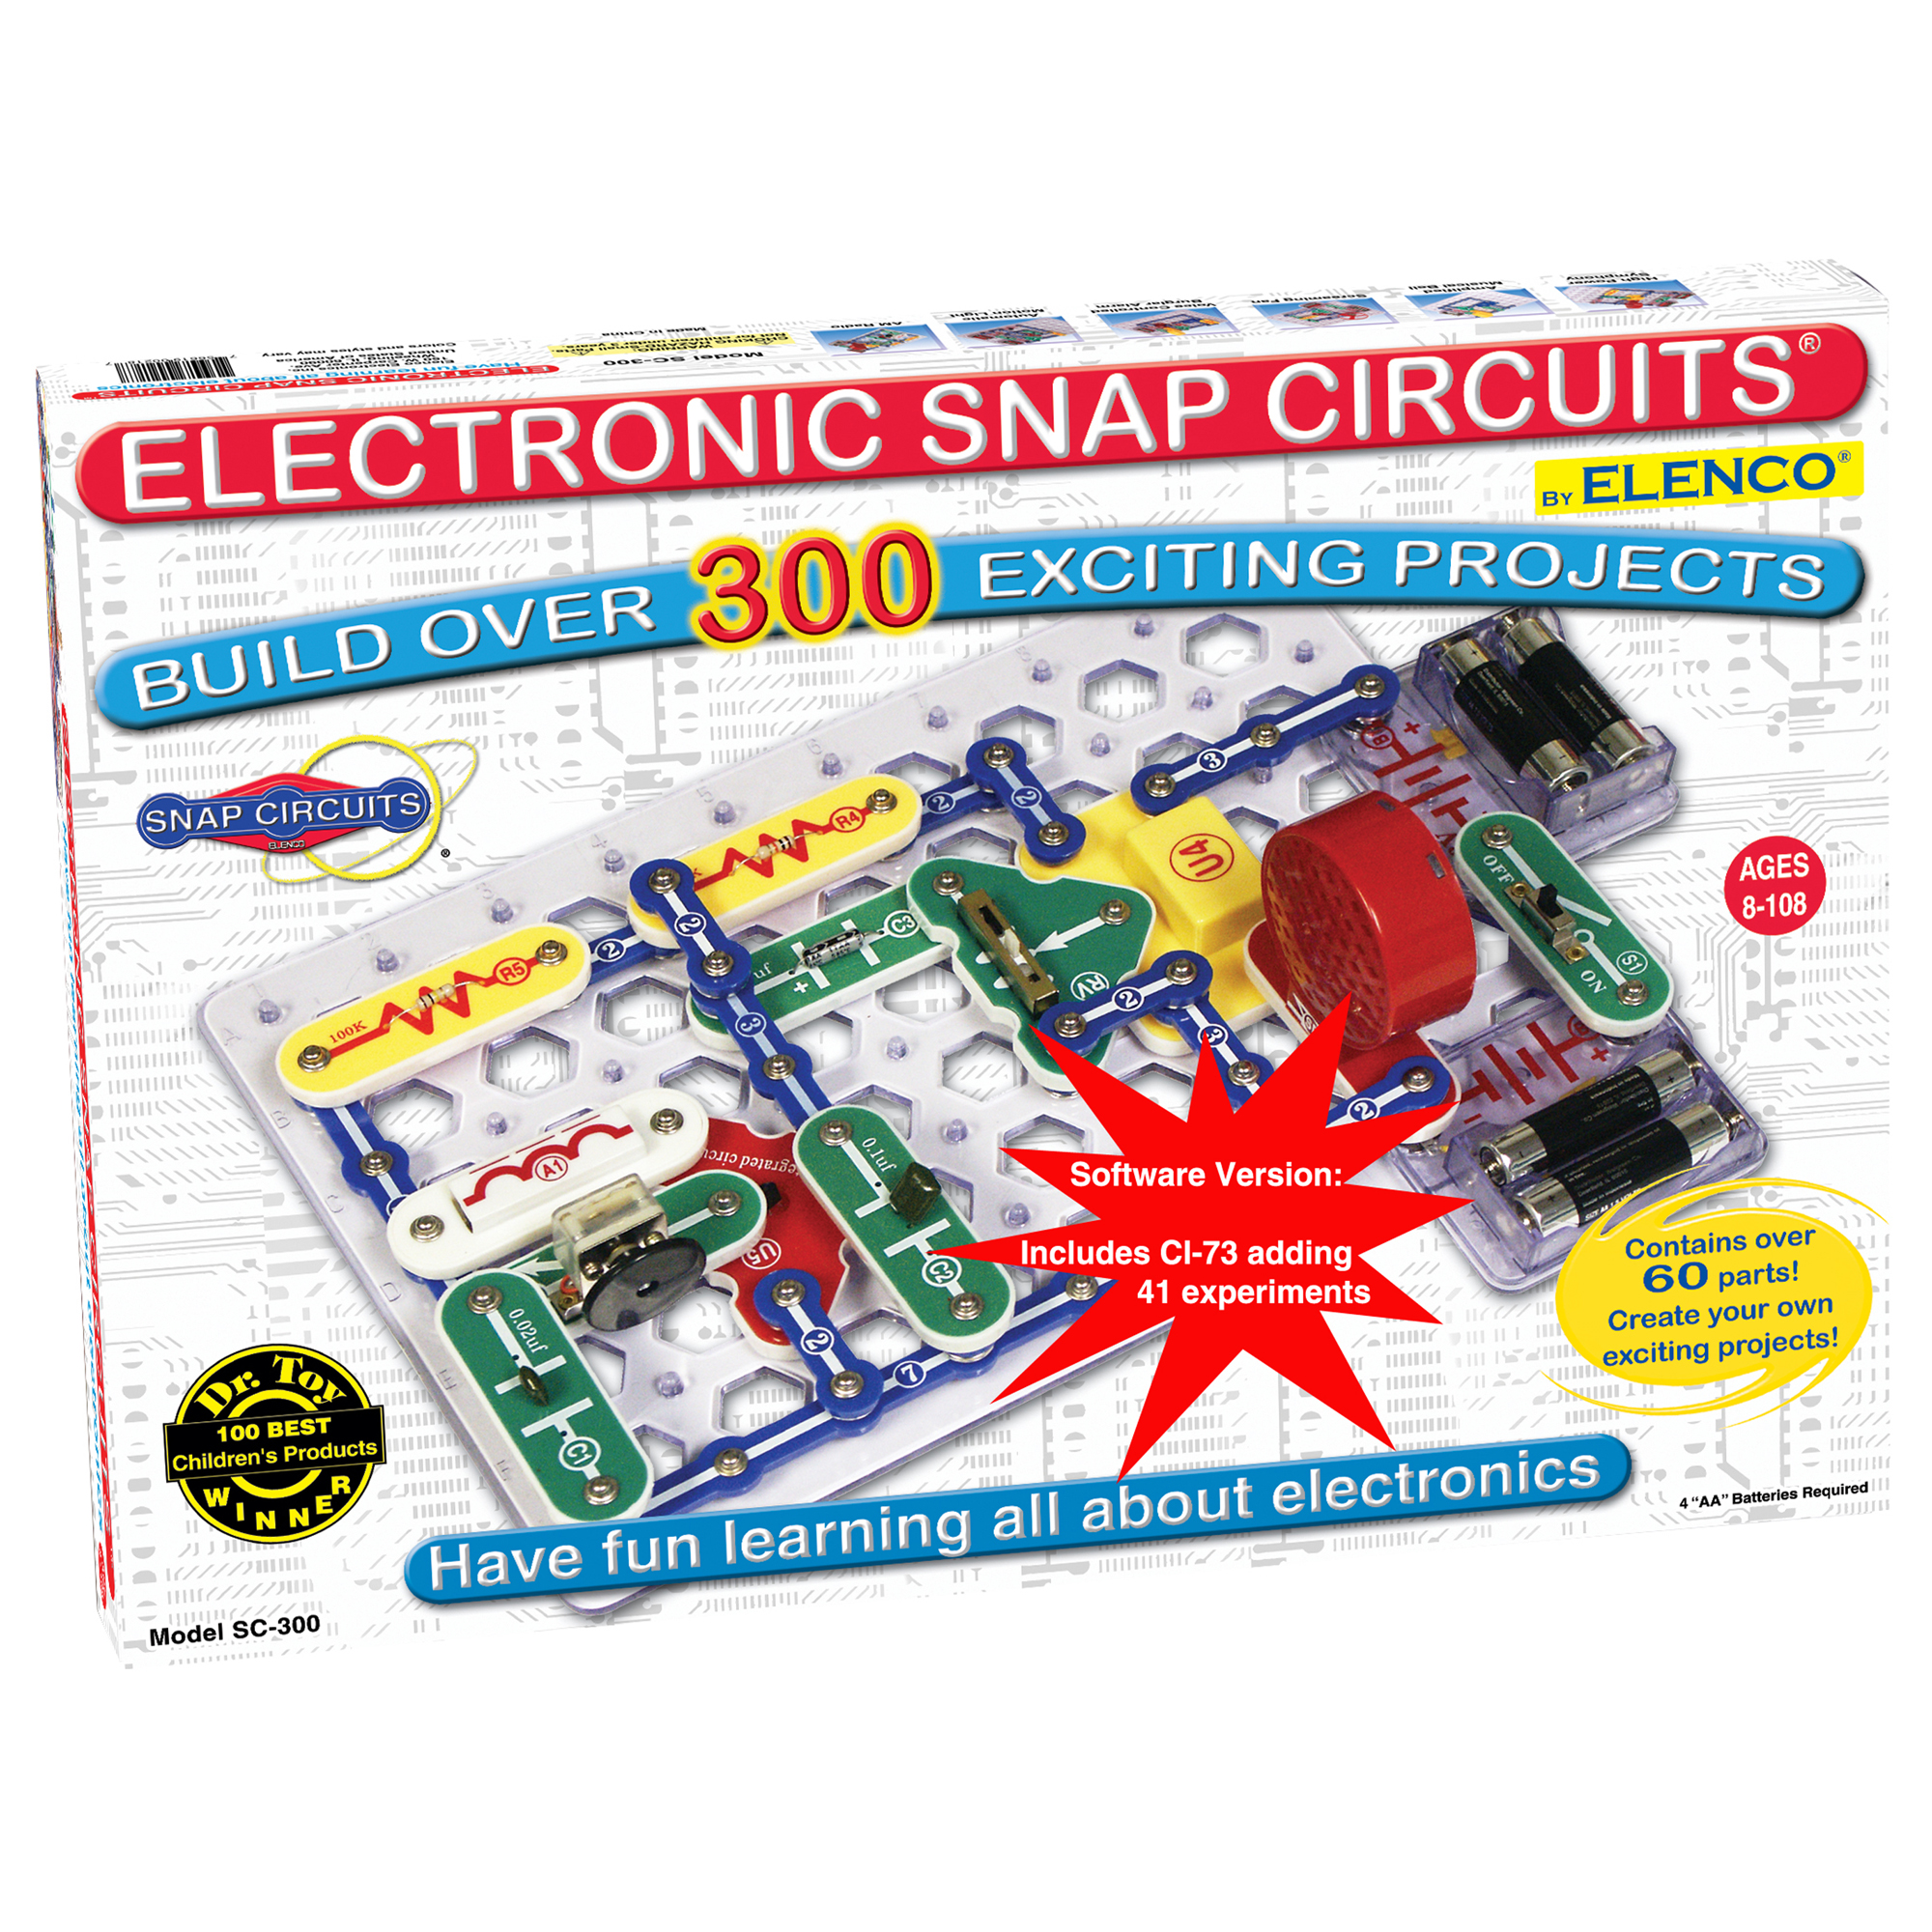 Snap Circuits Elenco Protoboard For Electronic Projects Buildcircuit 300 In 1 With Computer Interface